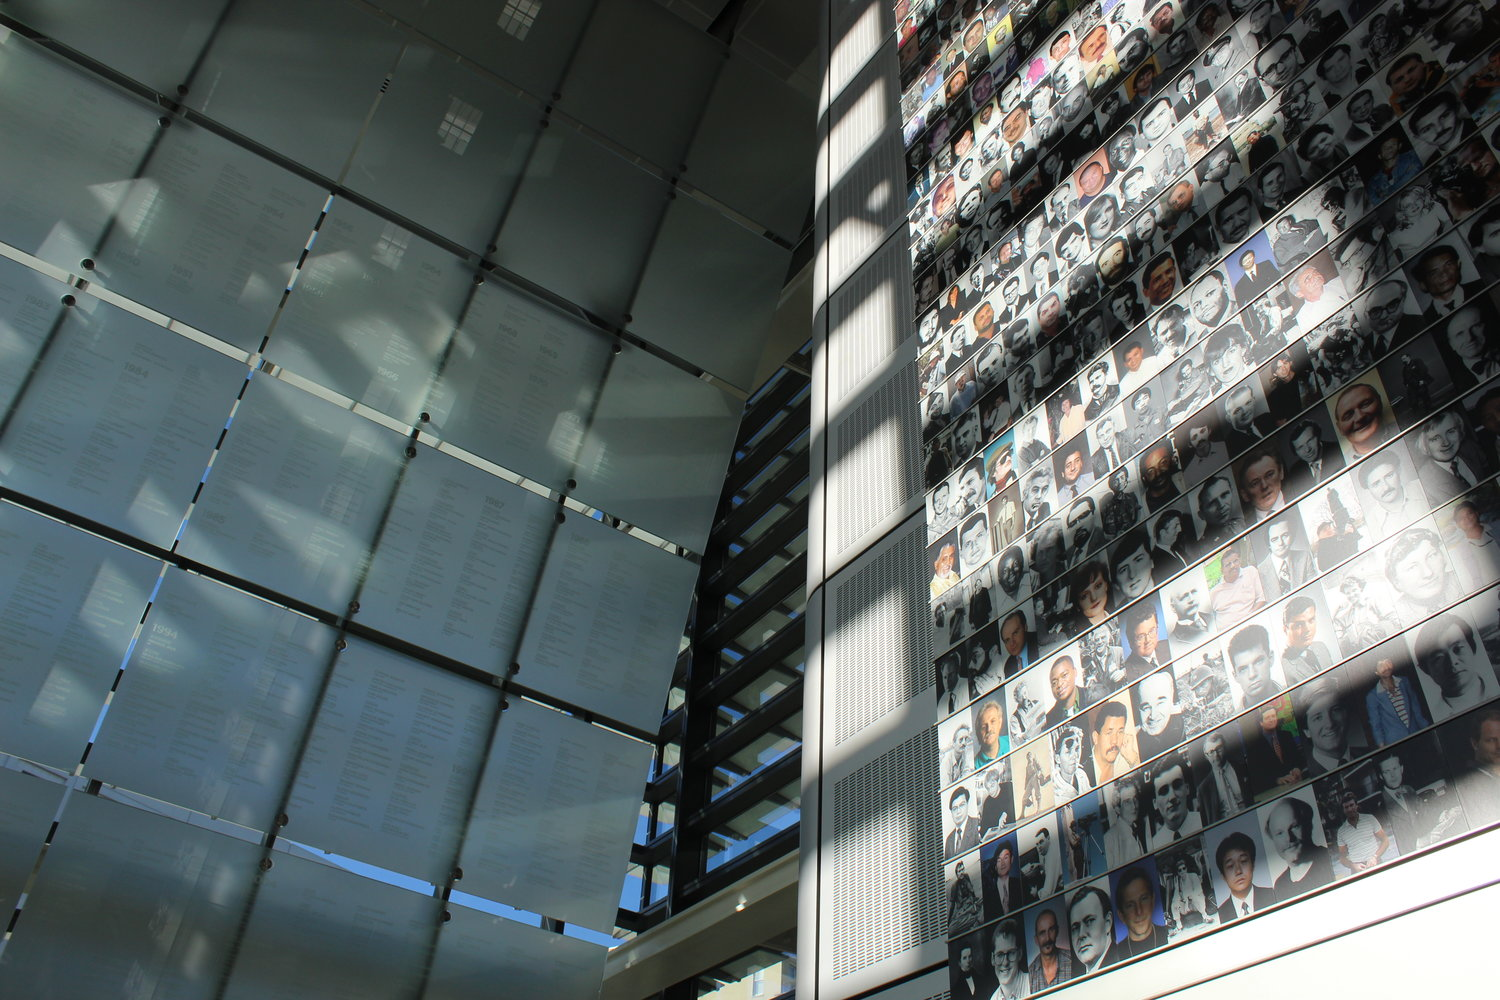 The Journalist Memorial on Level 3 lists the names of more than 2,000 reporters, editors, photographers and broadcasters who lost their lives reporting the news.